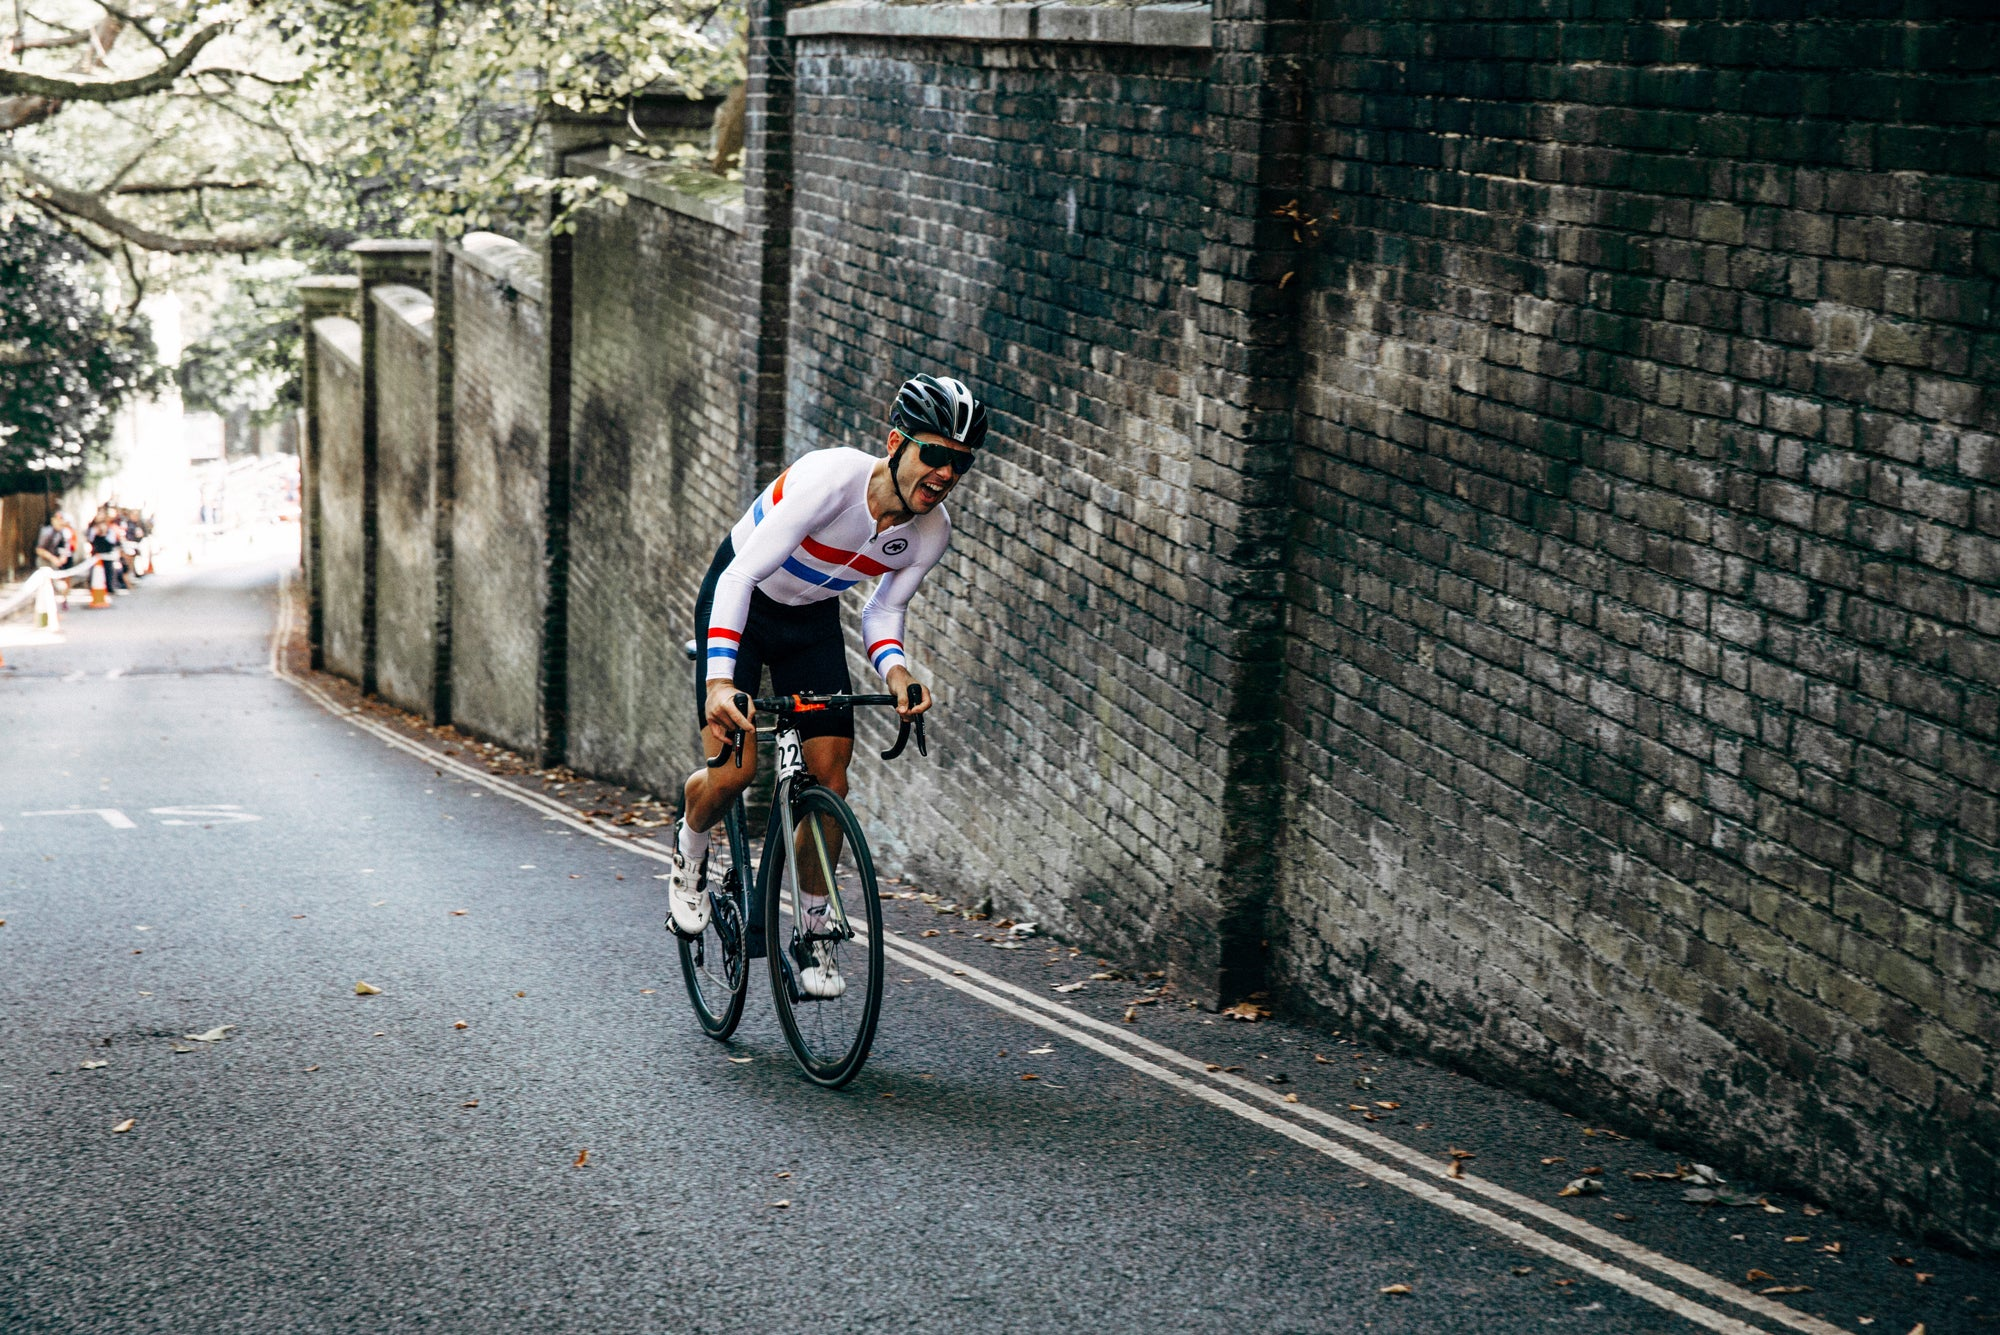 <h1>Hunt Hill Climb SL Wheelset</h1><i>Dan Evans racing at Urban Hill Climb up London's Swain's Lane</i>